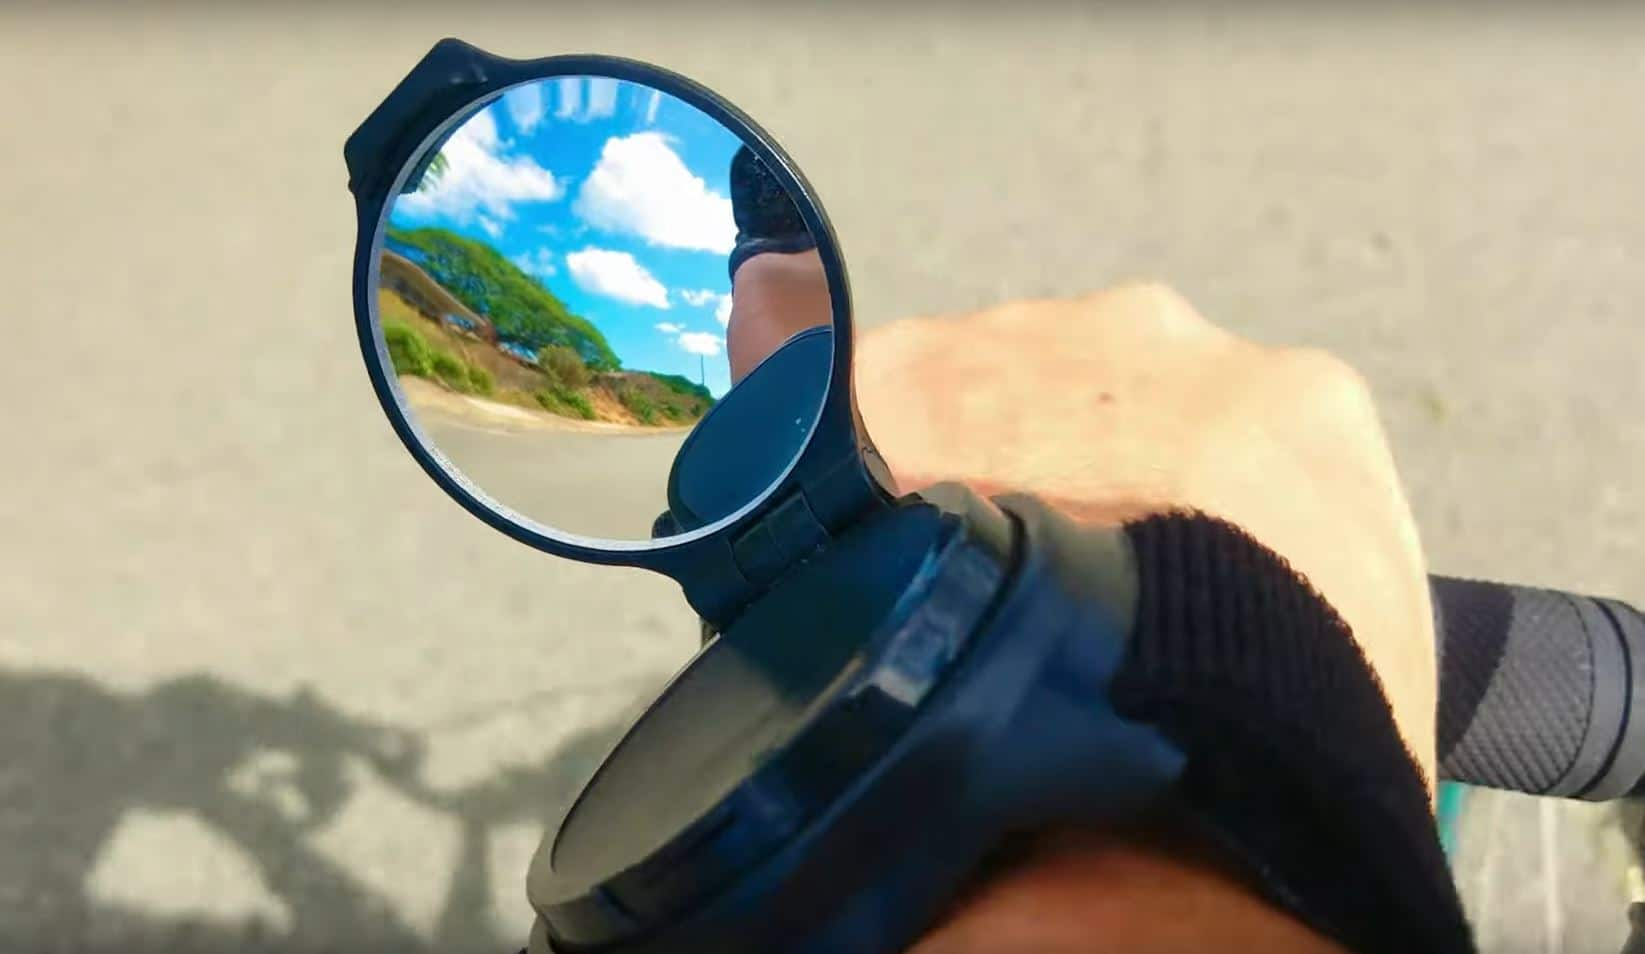 Best Wrist Rear View Mirror for Cyclists Reviews & Buying Guide [2020/2021]